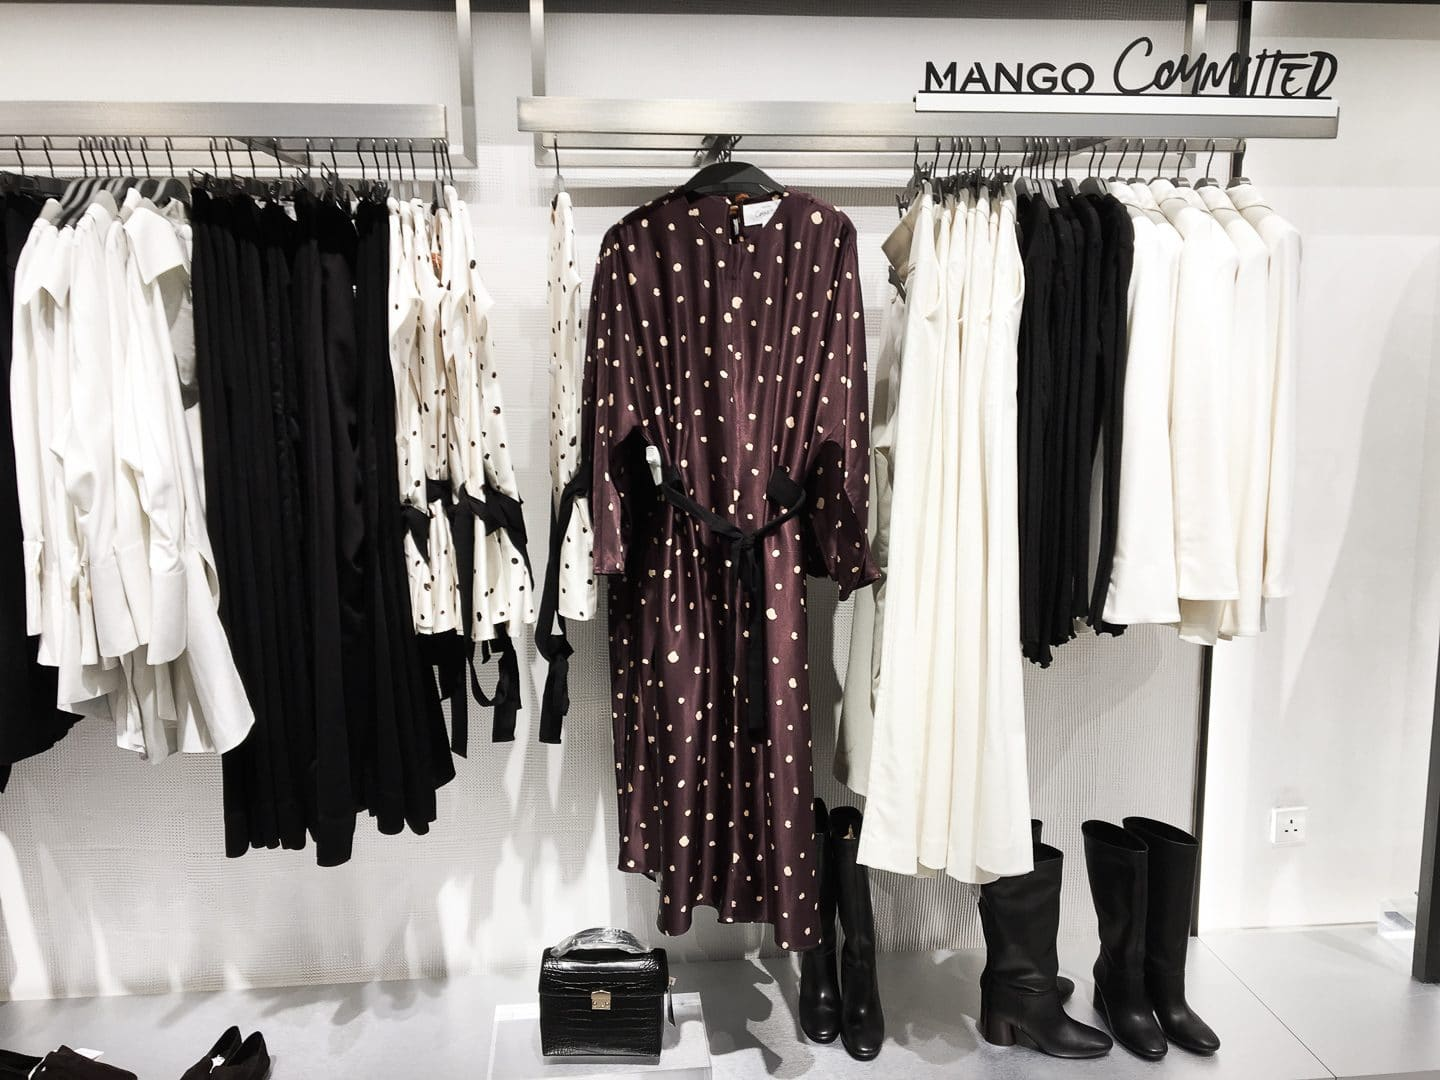 Mango's Committed range of clothing hung on a rail